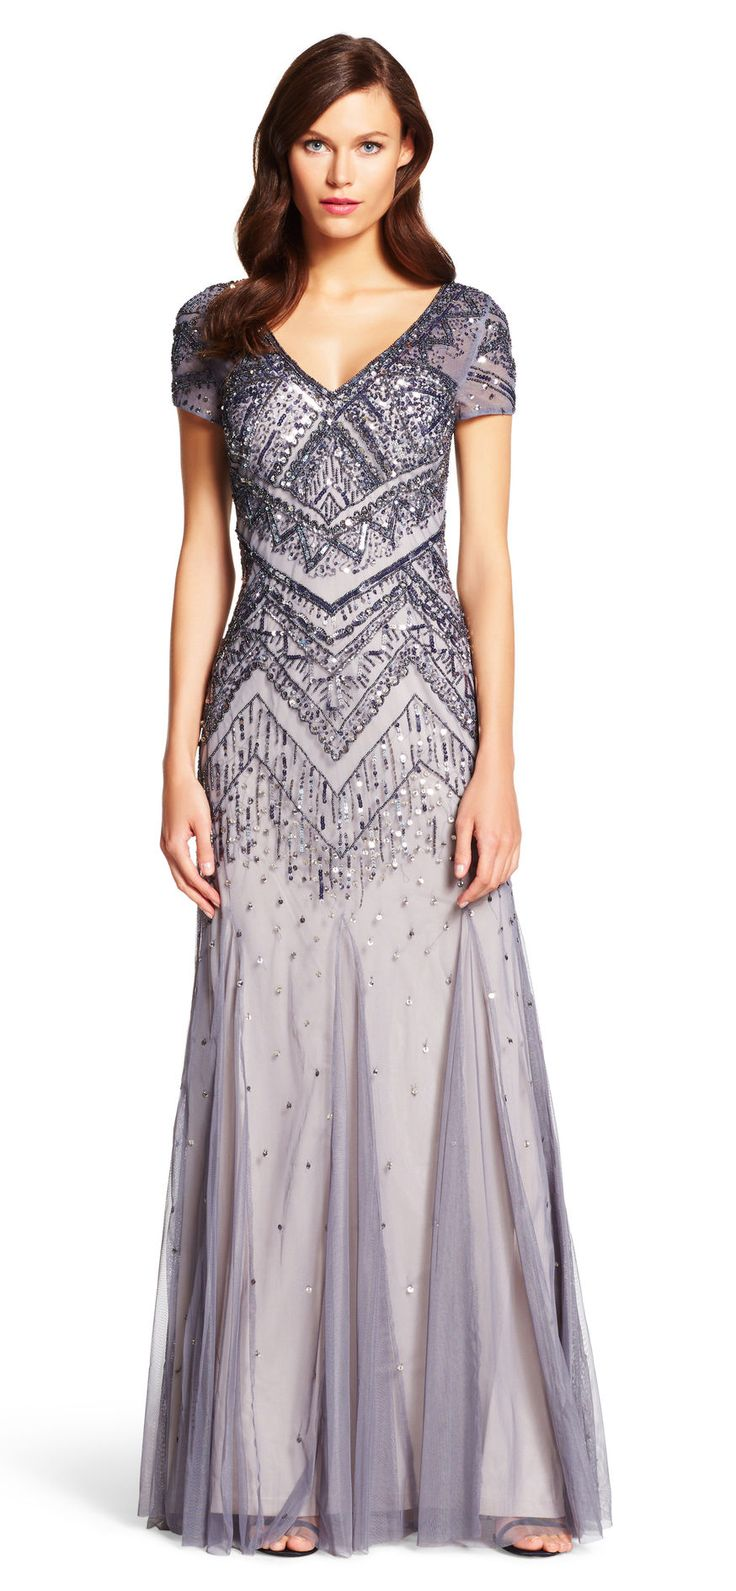 Pinterest flapper wedding dresses 1920s style and adrianna papell - Beaded Mesh Mermaid Gown Adrianna Papell For Mother Of The Bride